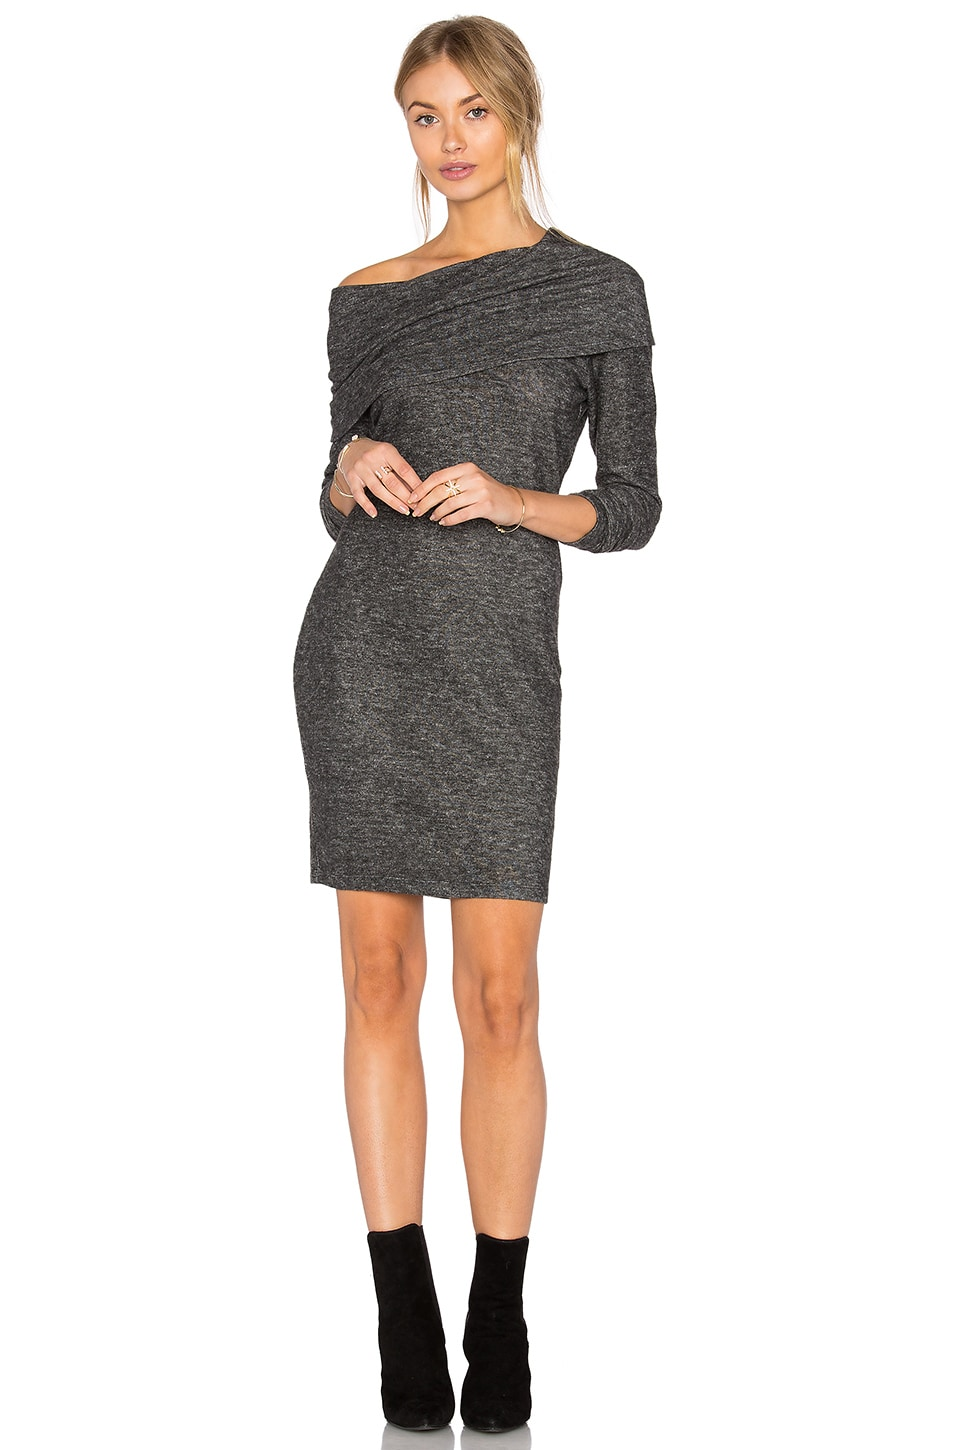 LNA Brenda Scarf Dress in Melange Grey